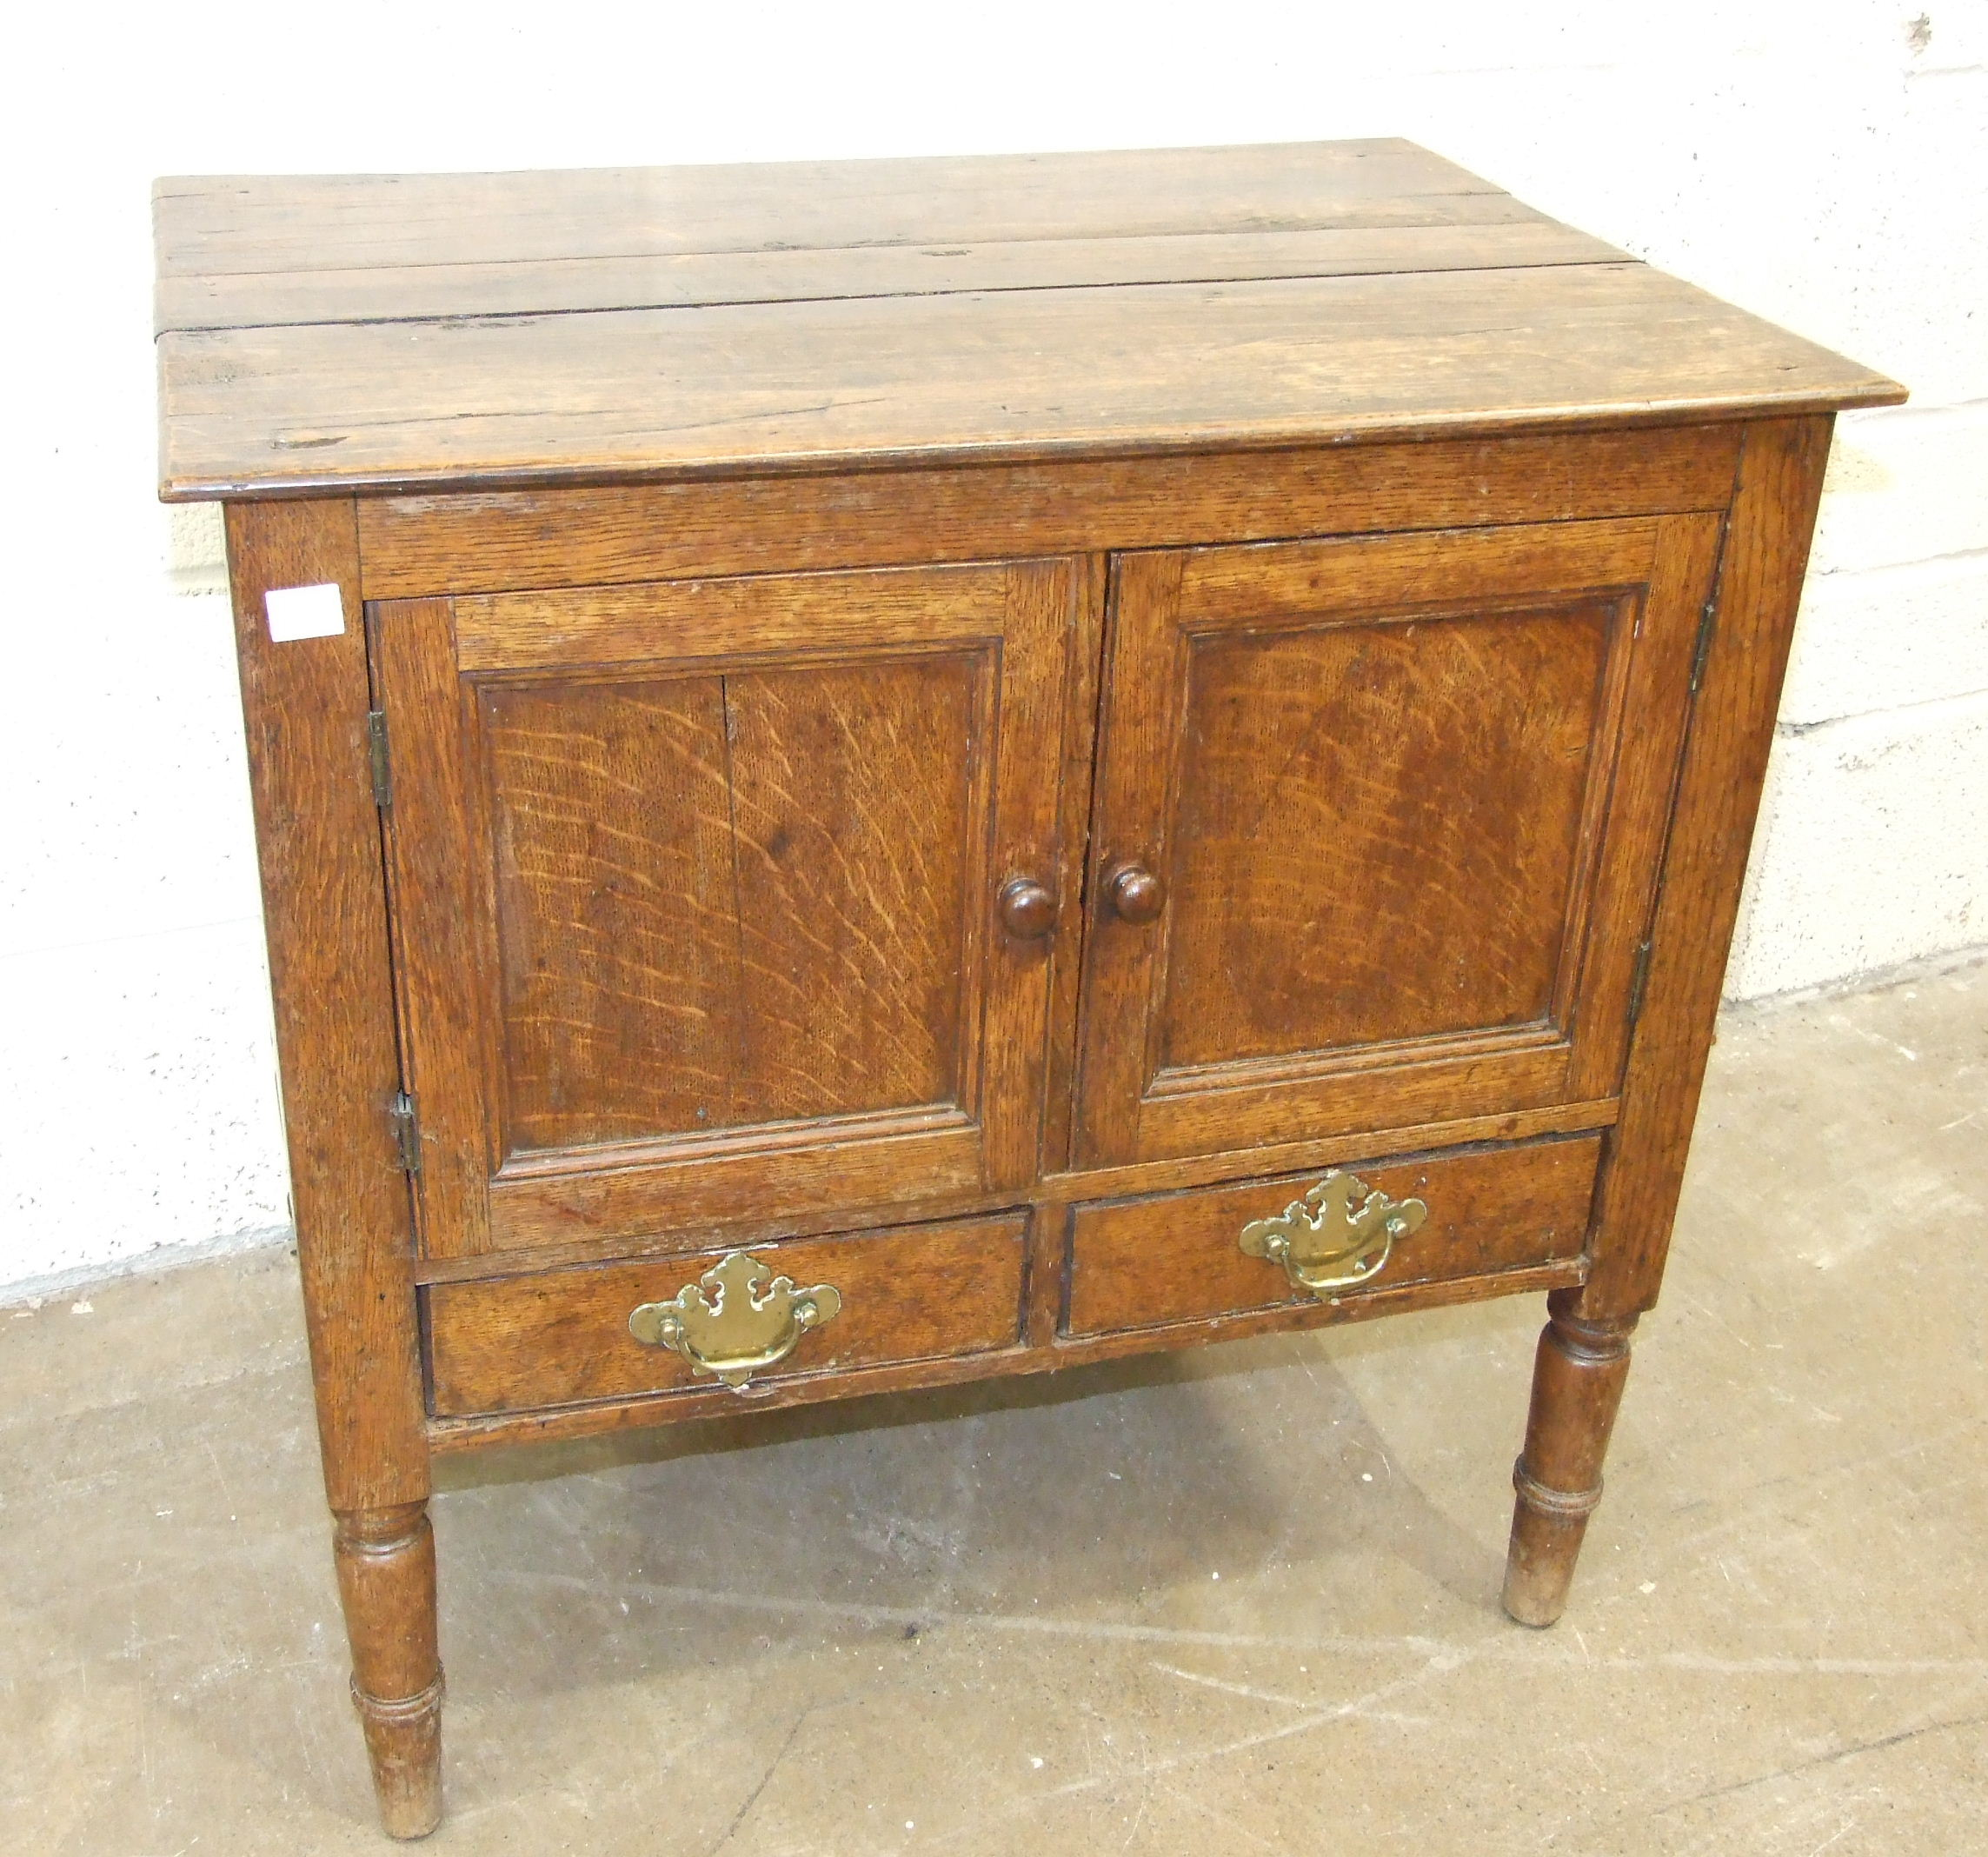 An antique oak pot cupboard having a pair of panelled doors and two small drawers, 70cm wide, 70cm